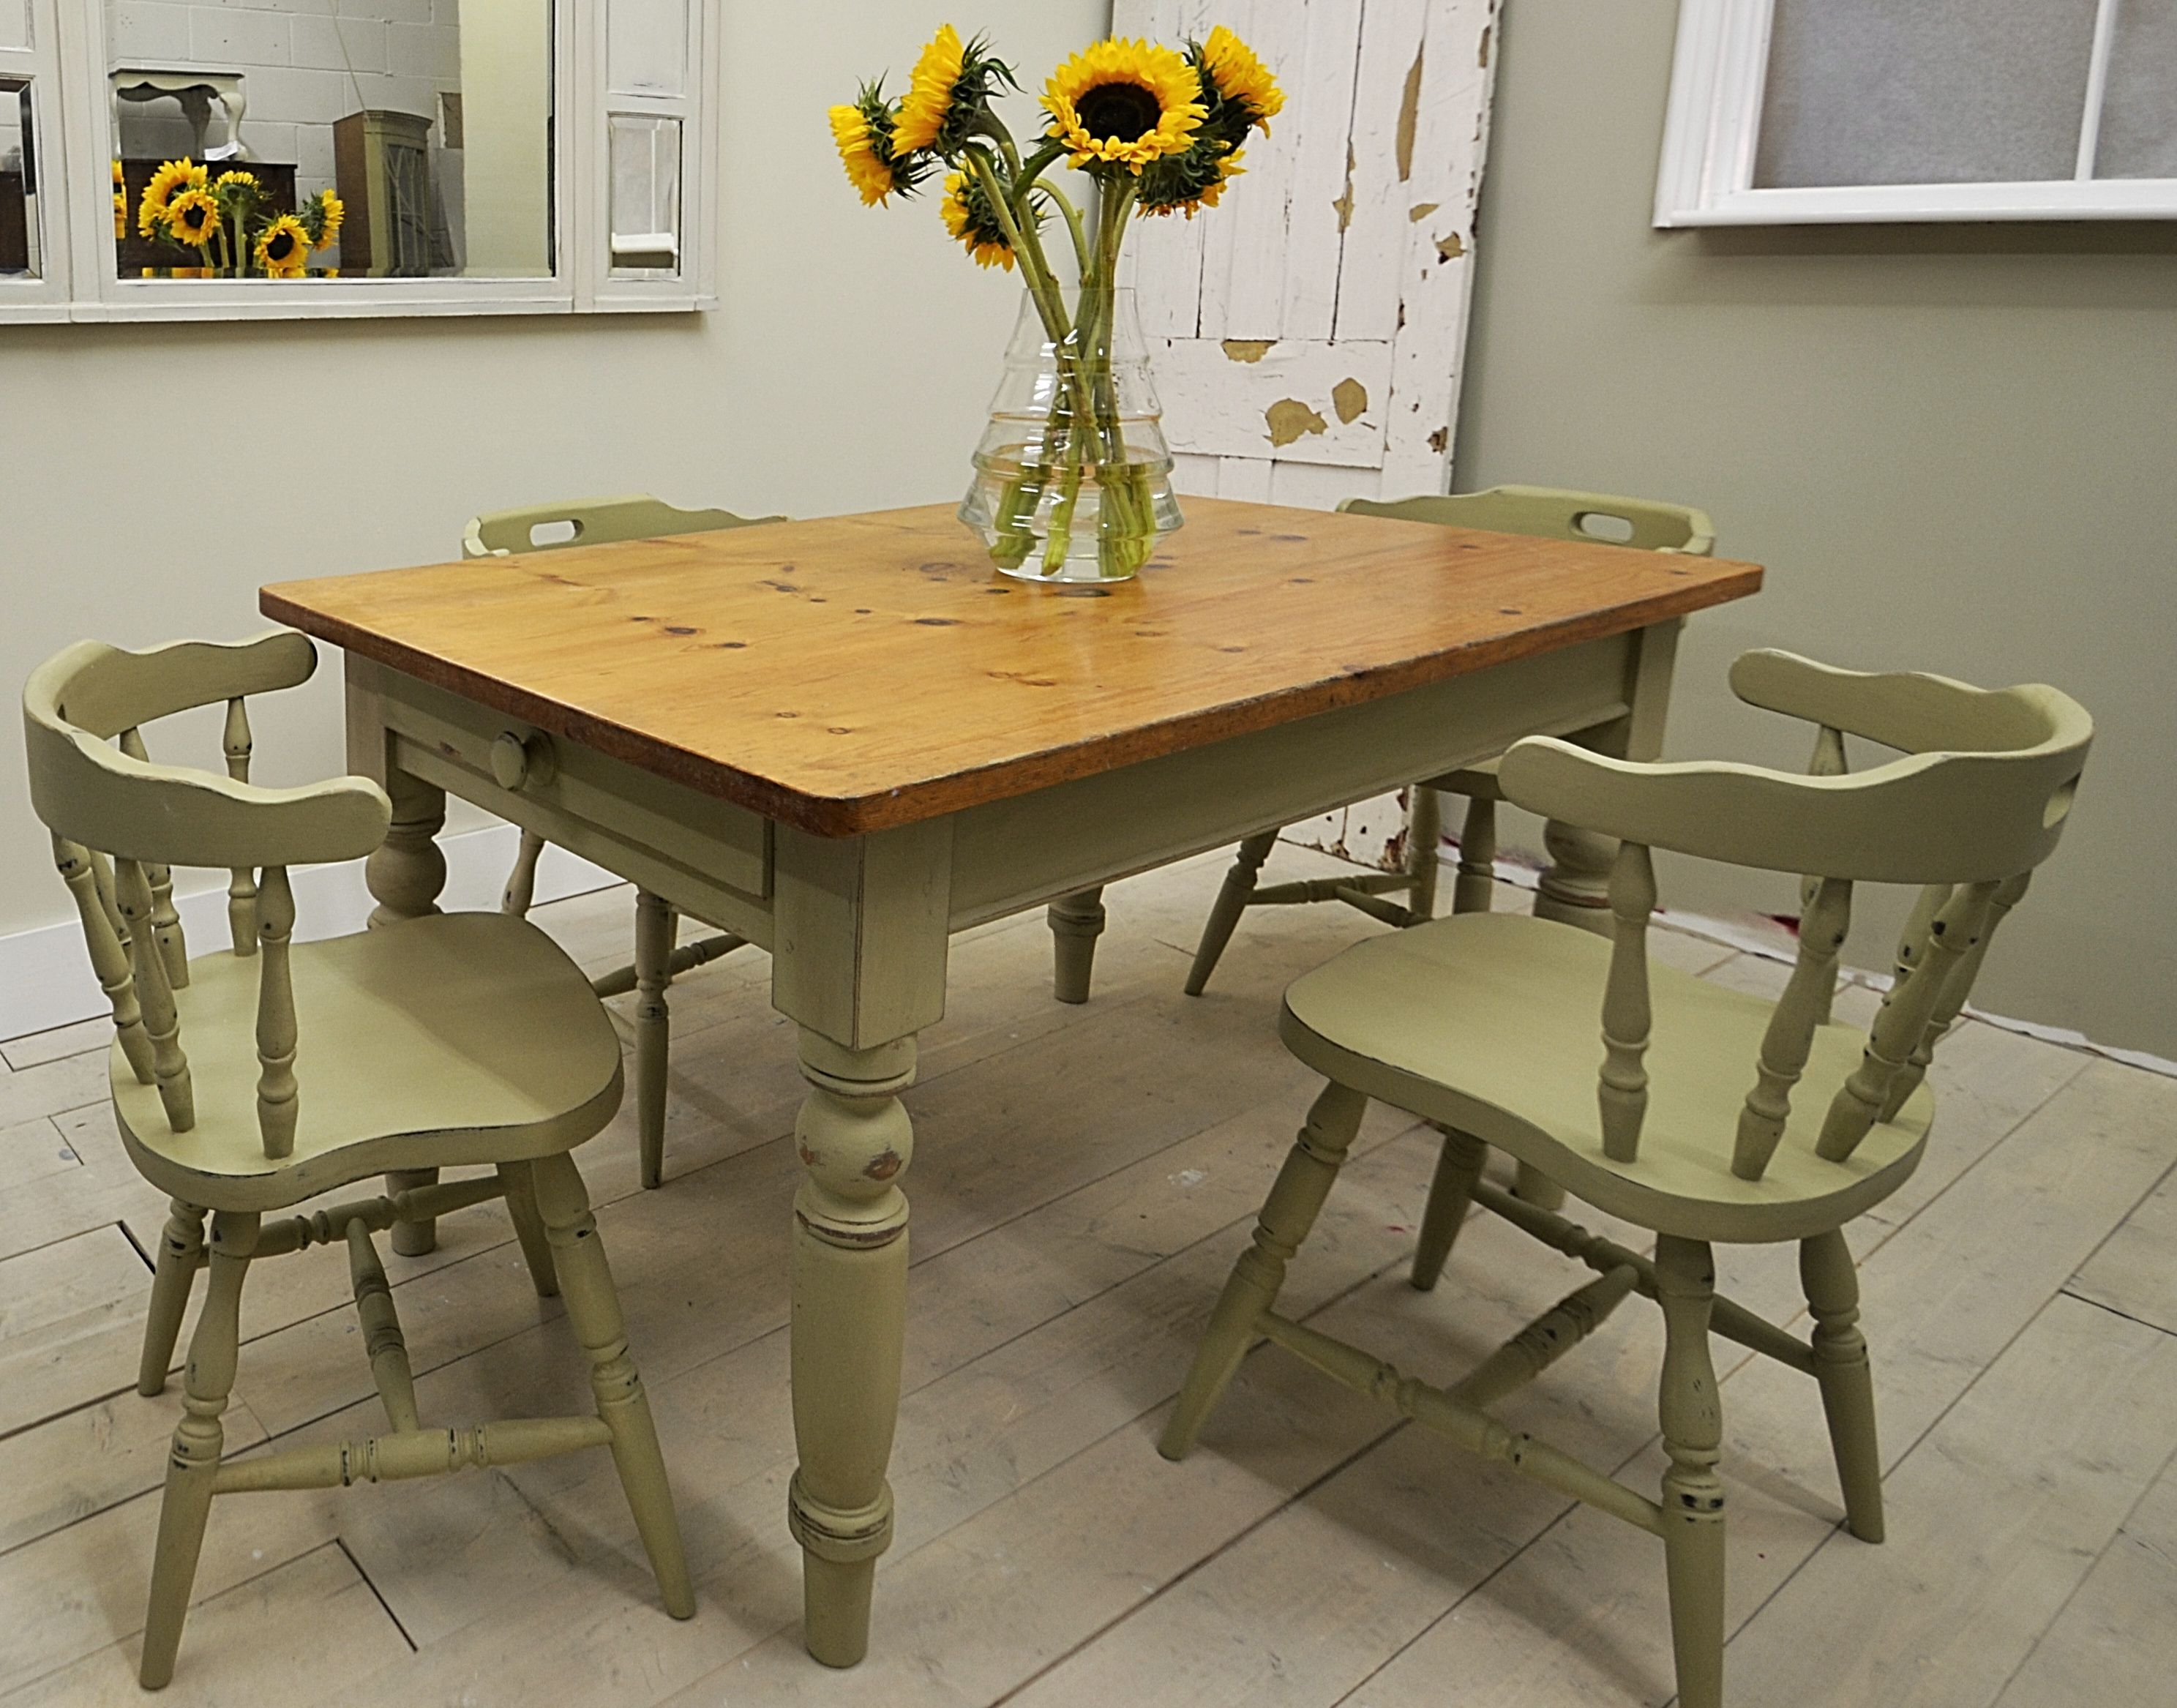 threshold with trolley marvelous kitchen drawers fascinating island and for concept style table inspiration pic trends wooden image dining storage oak cart white bar